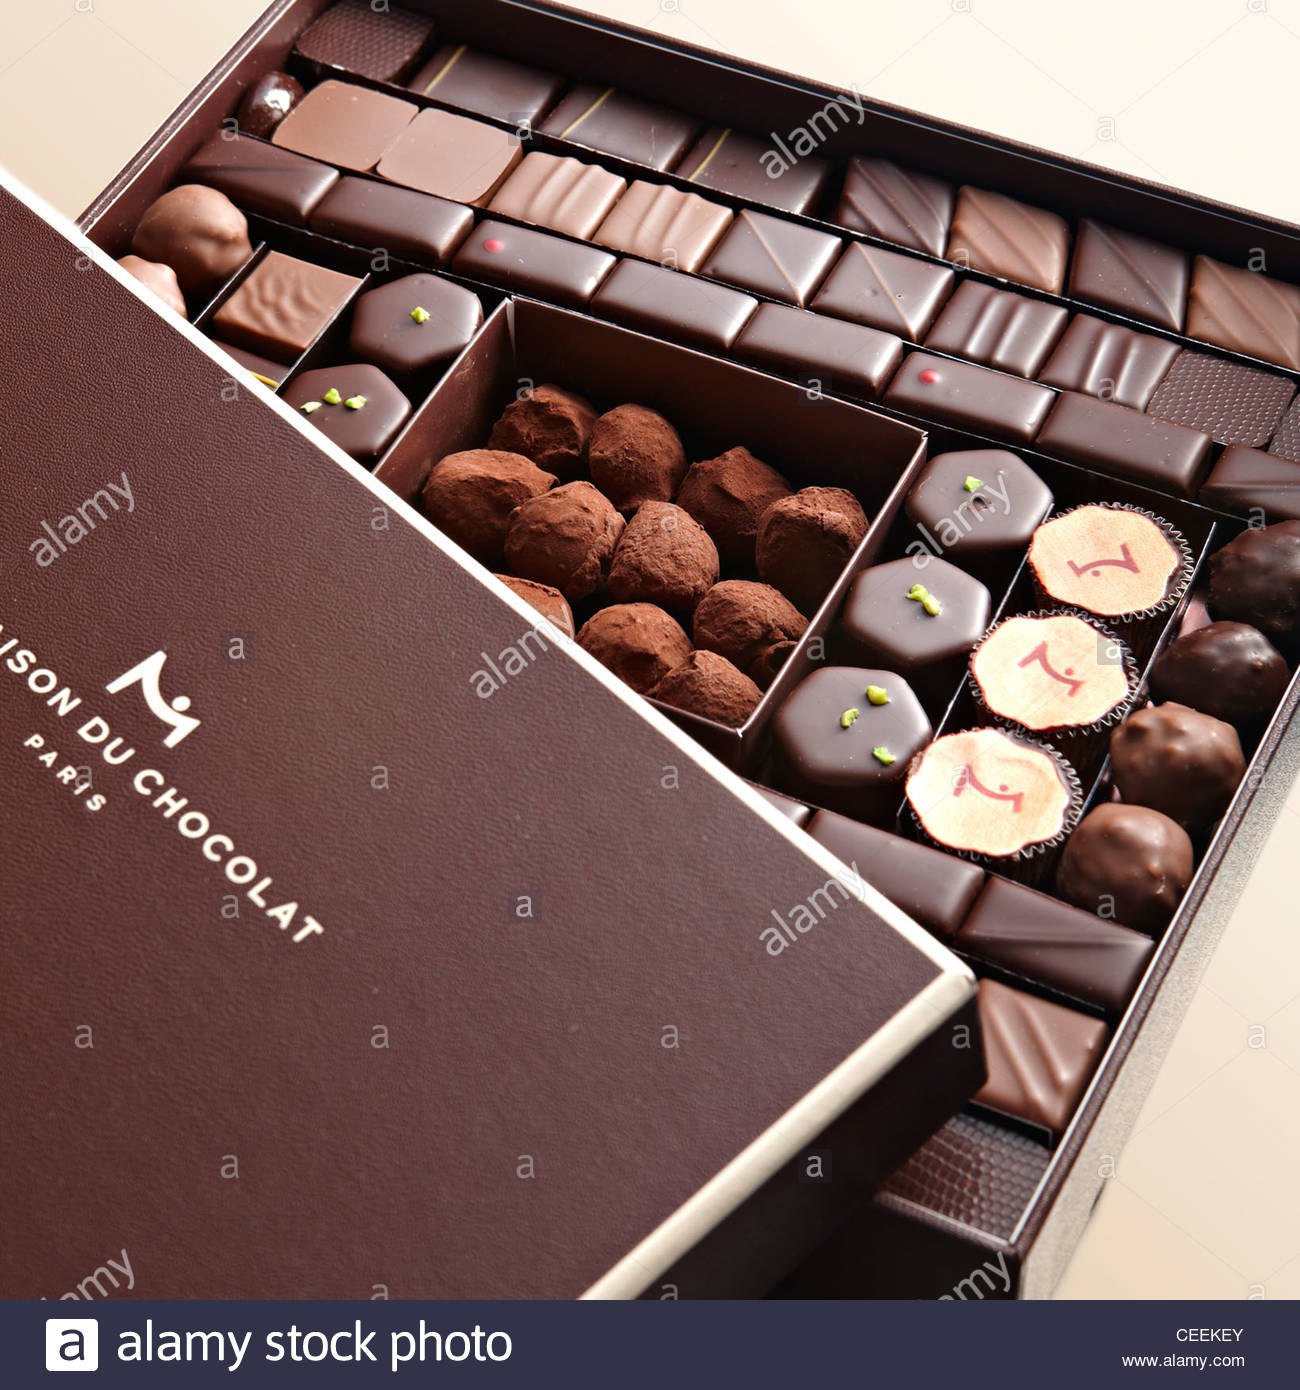 Kids Stock A Wide Selection Of Luxury Premium Cotton: Luxury Large Box Chocolate Selection Stock Photo: 43348563